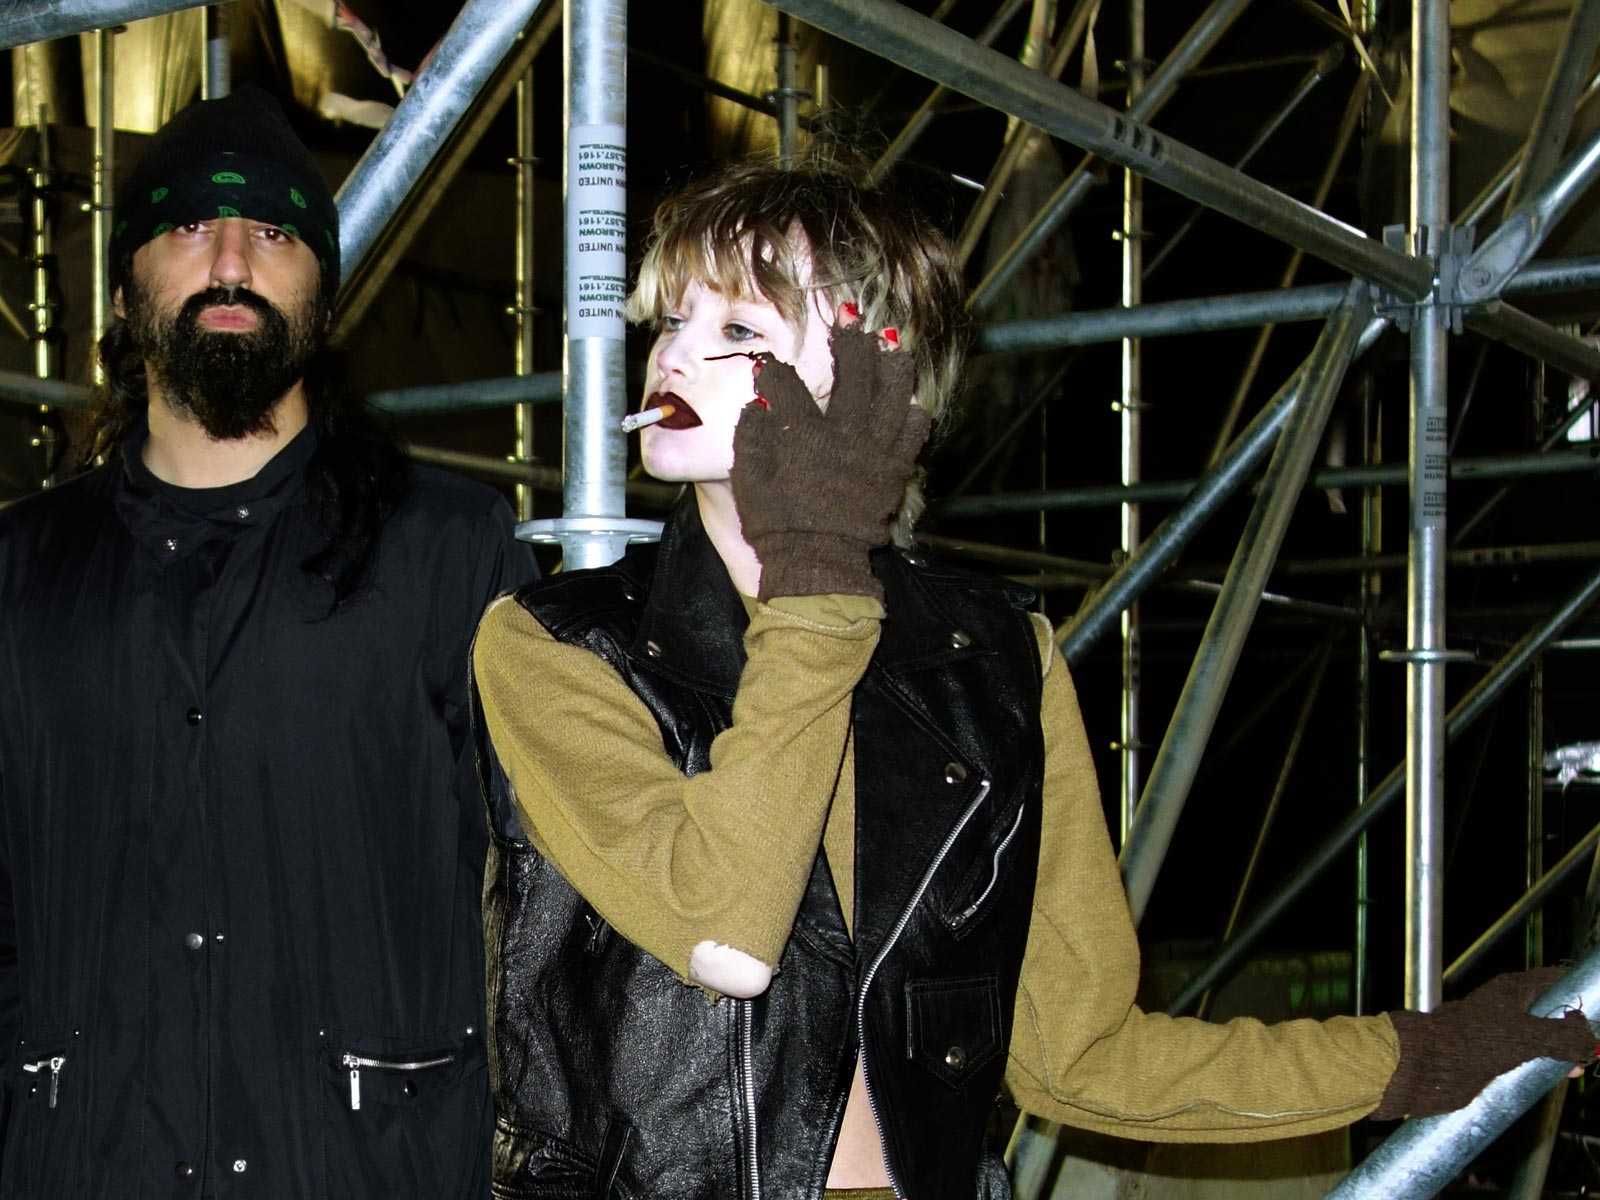 source: Crystal Castles